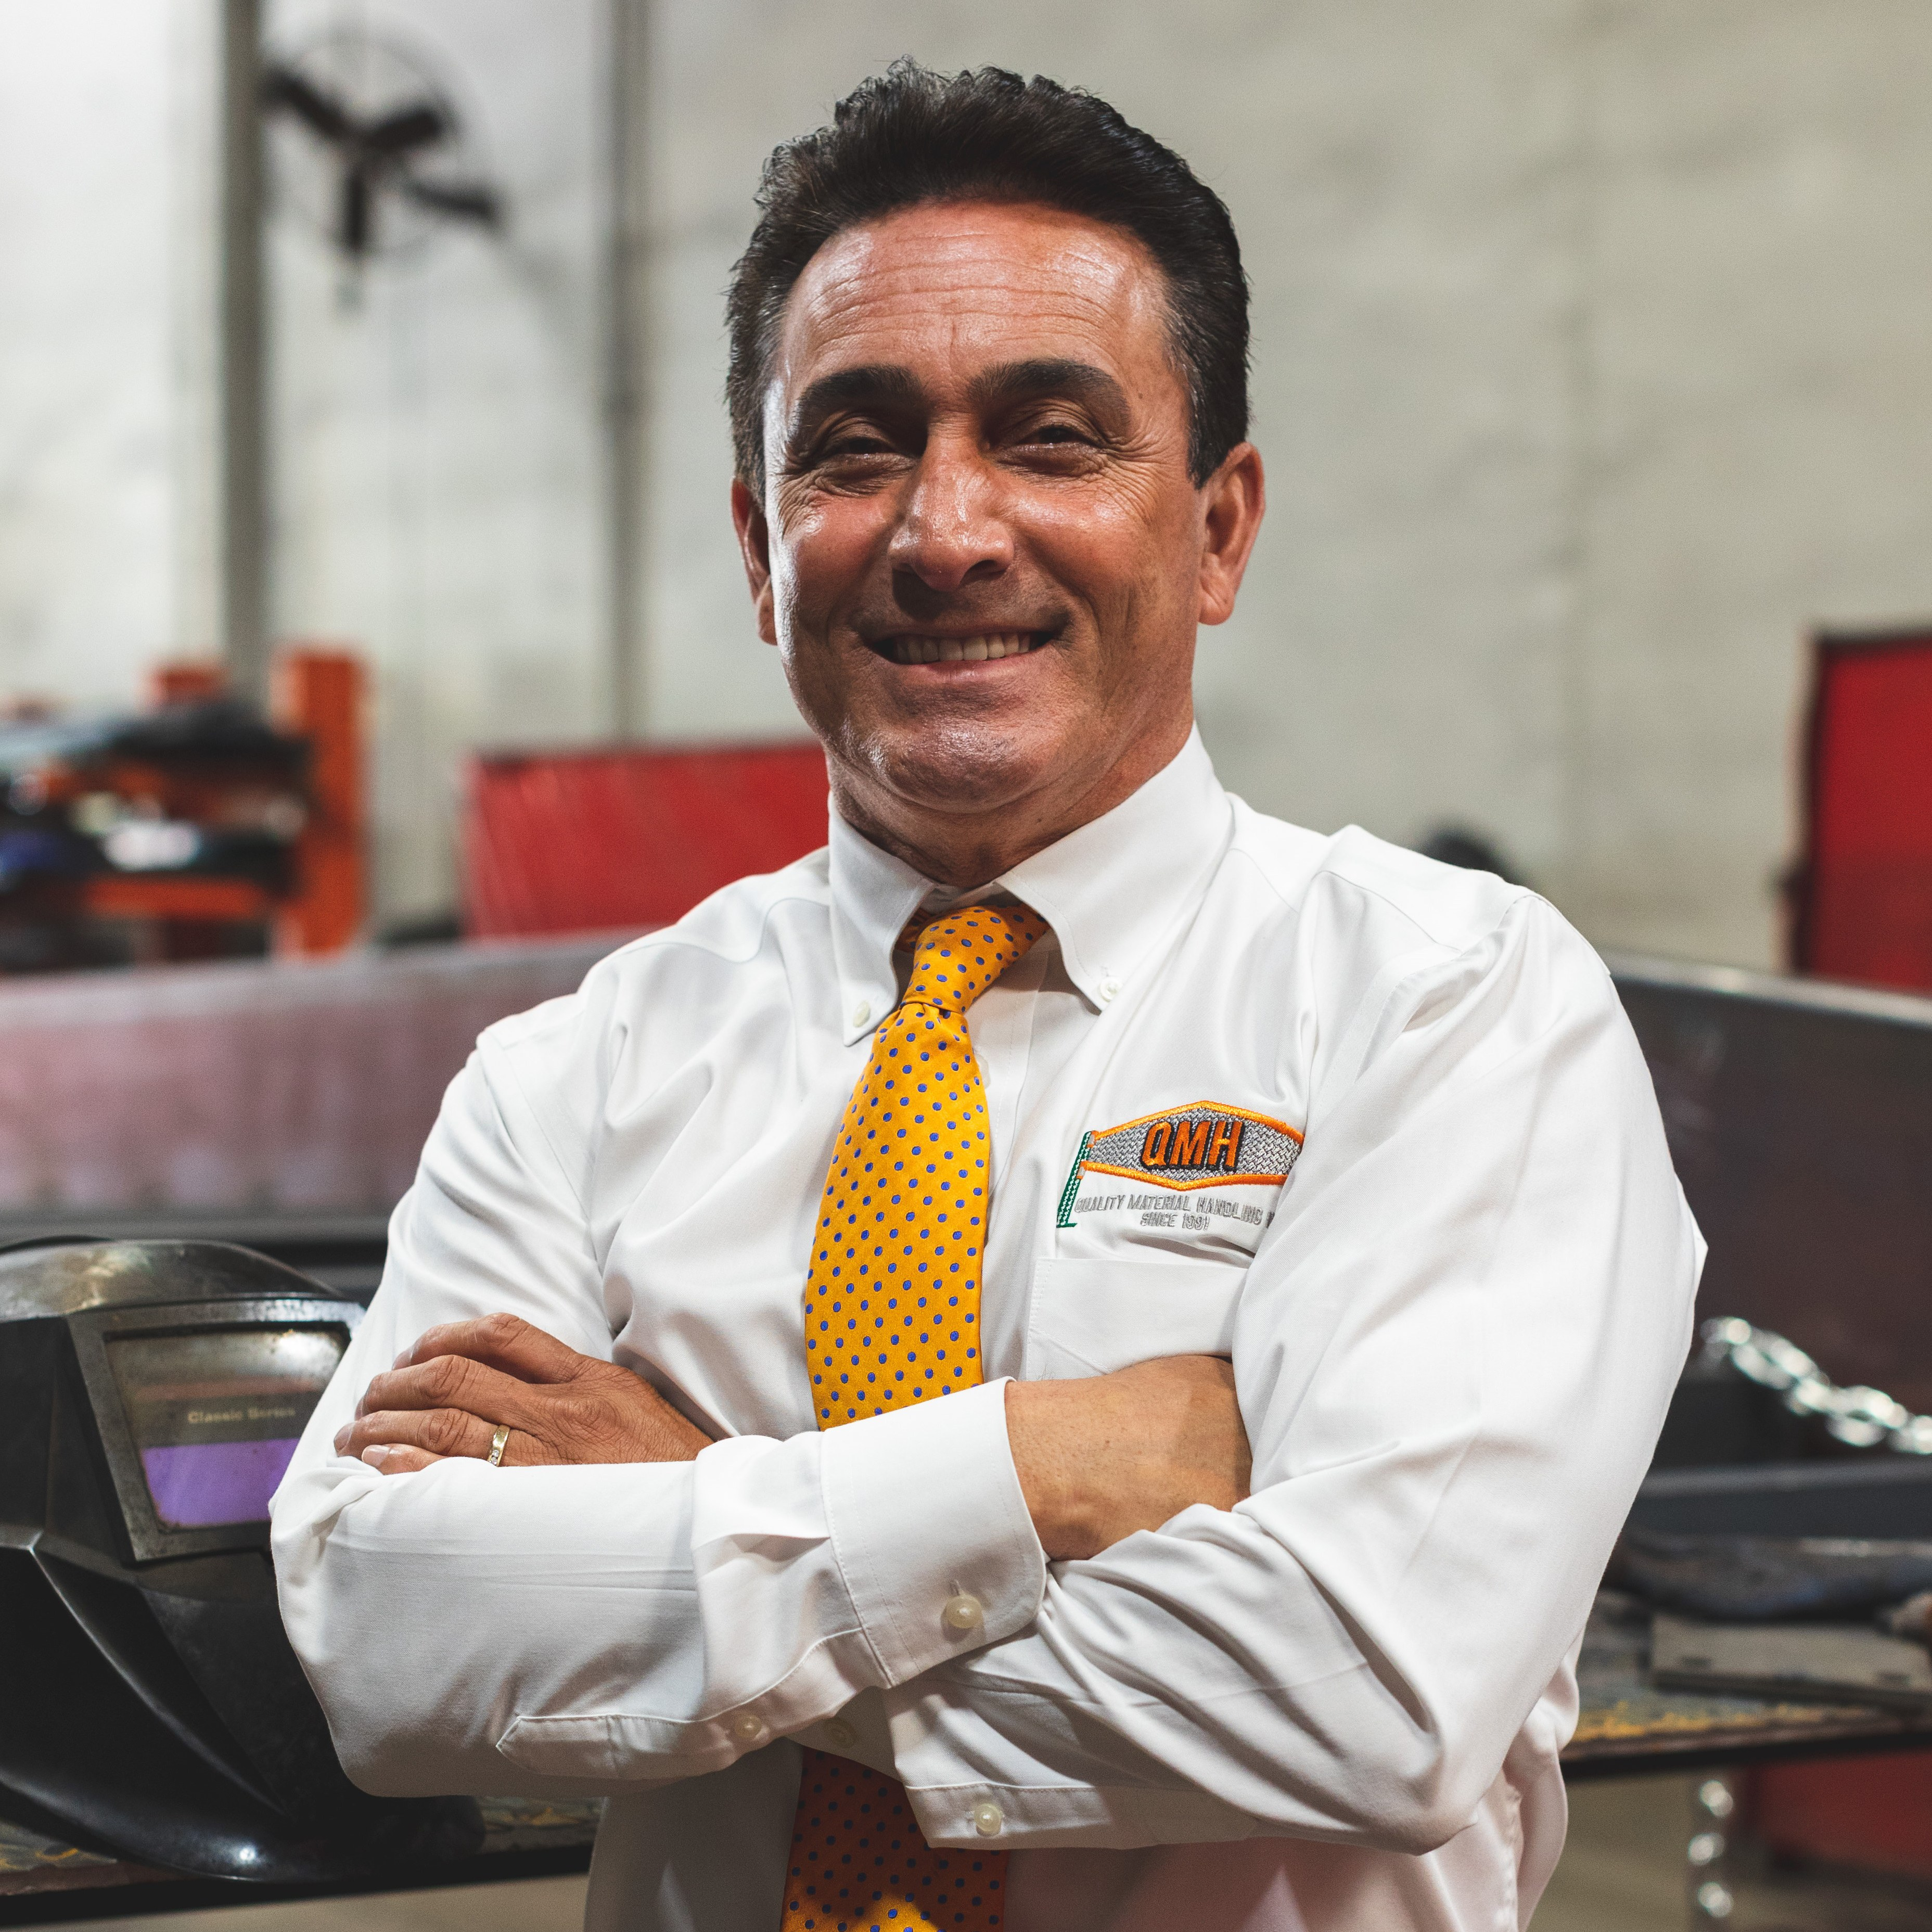 Hector Pinto, CEO and co-Founder at Quality Material Handling, Inc.